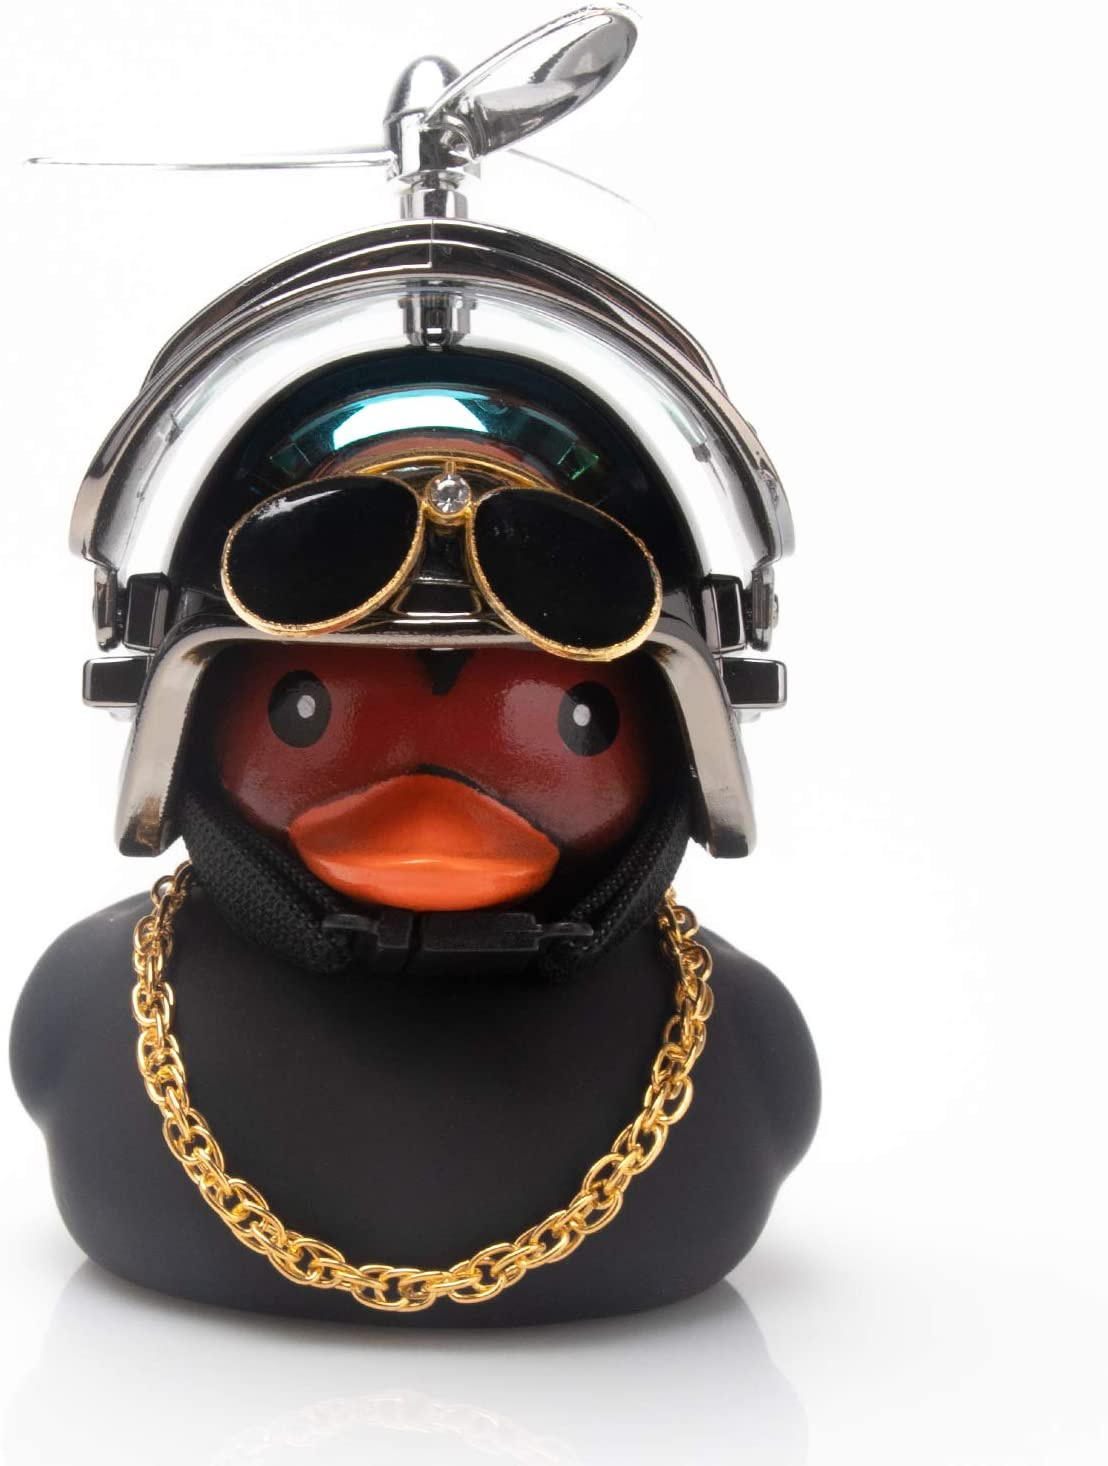 wonuu Duck Car Dashboard Decorations Cool Black Rubber Duck for Car Funny Car Accessories Rubber Duck with Thruster Helmet Sunglasses, and Gold Chain Cool Ornaments